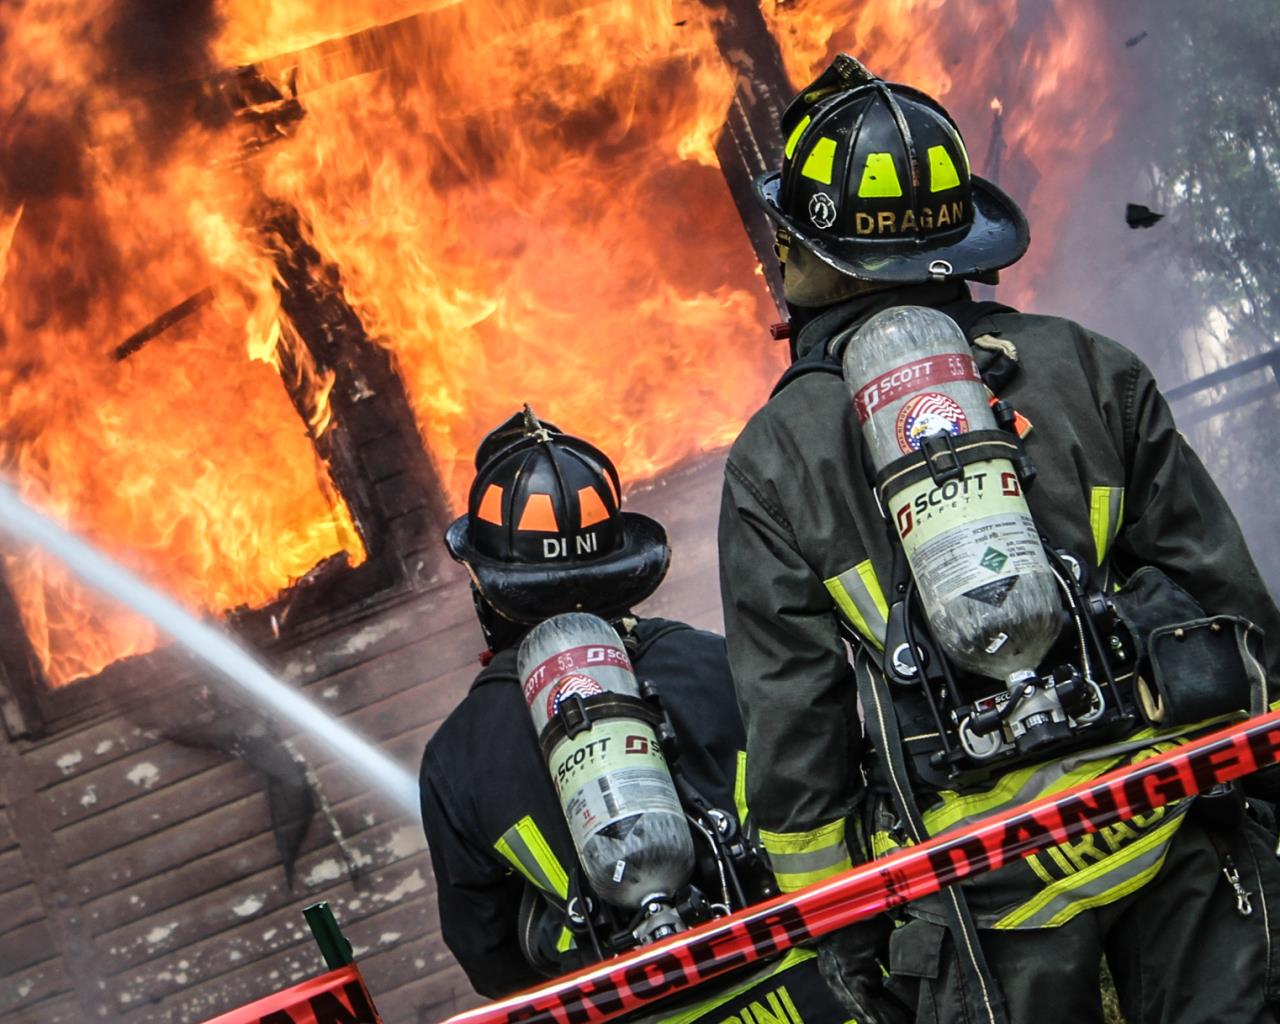 052218_live burn training_Jim L 2